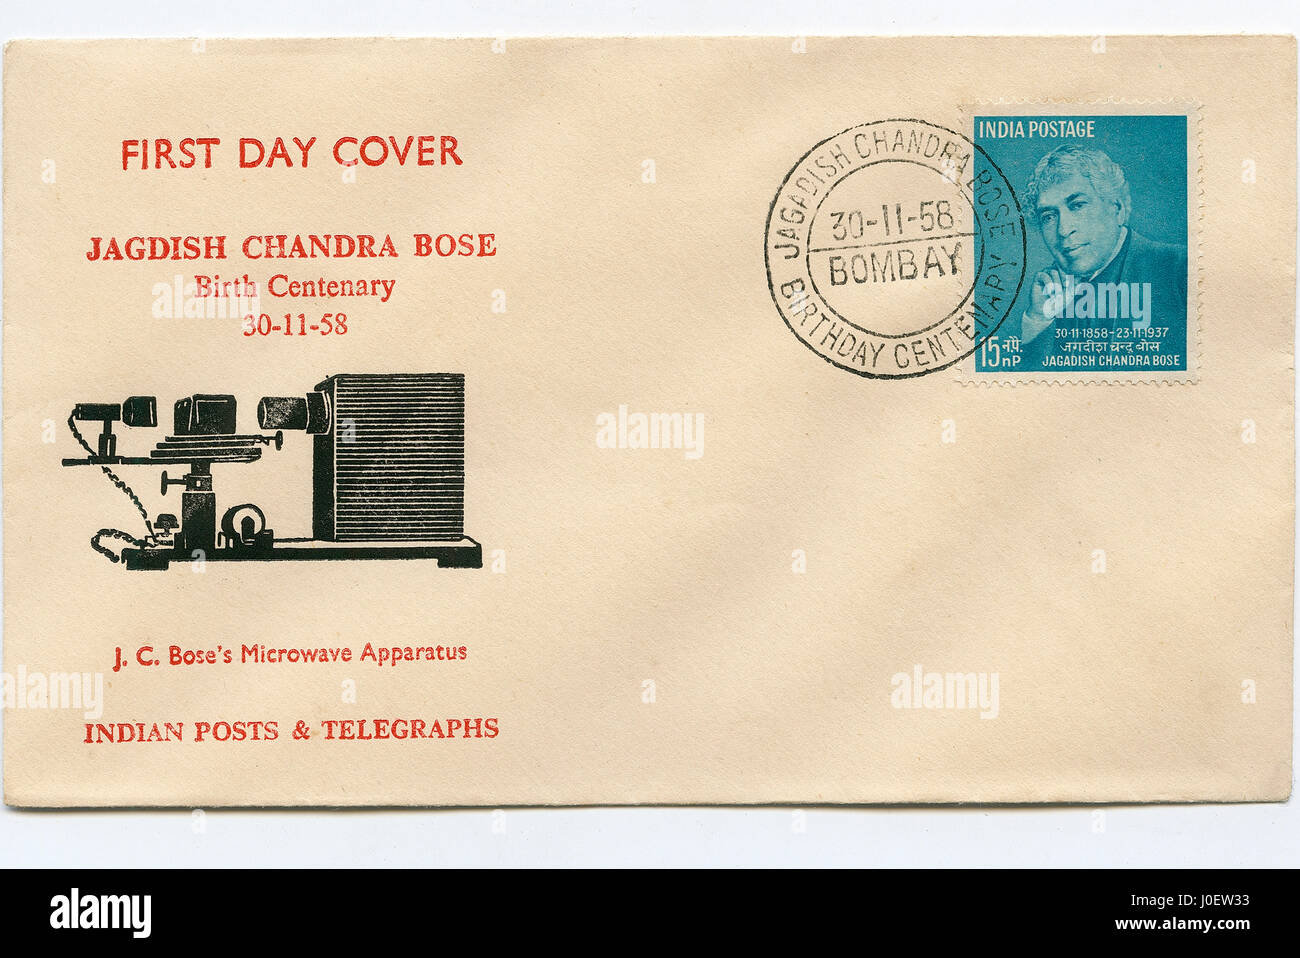 First day cover of jagadish chandra bose birth centenary, india, asia - Stock Image